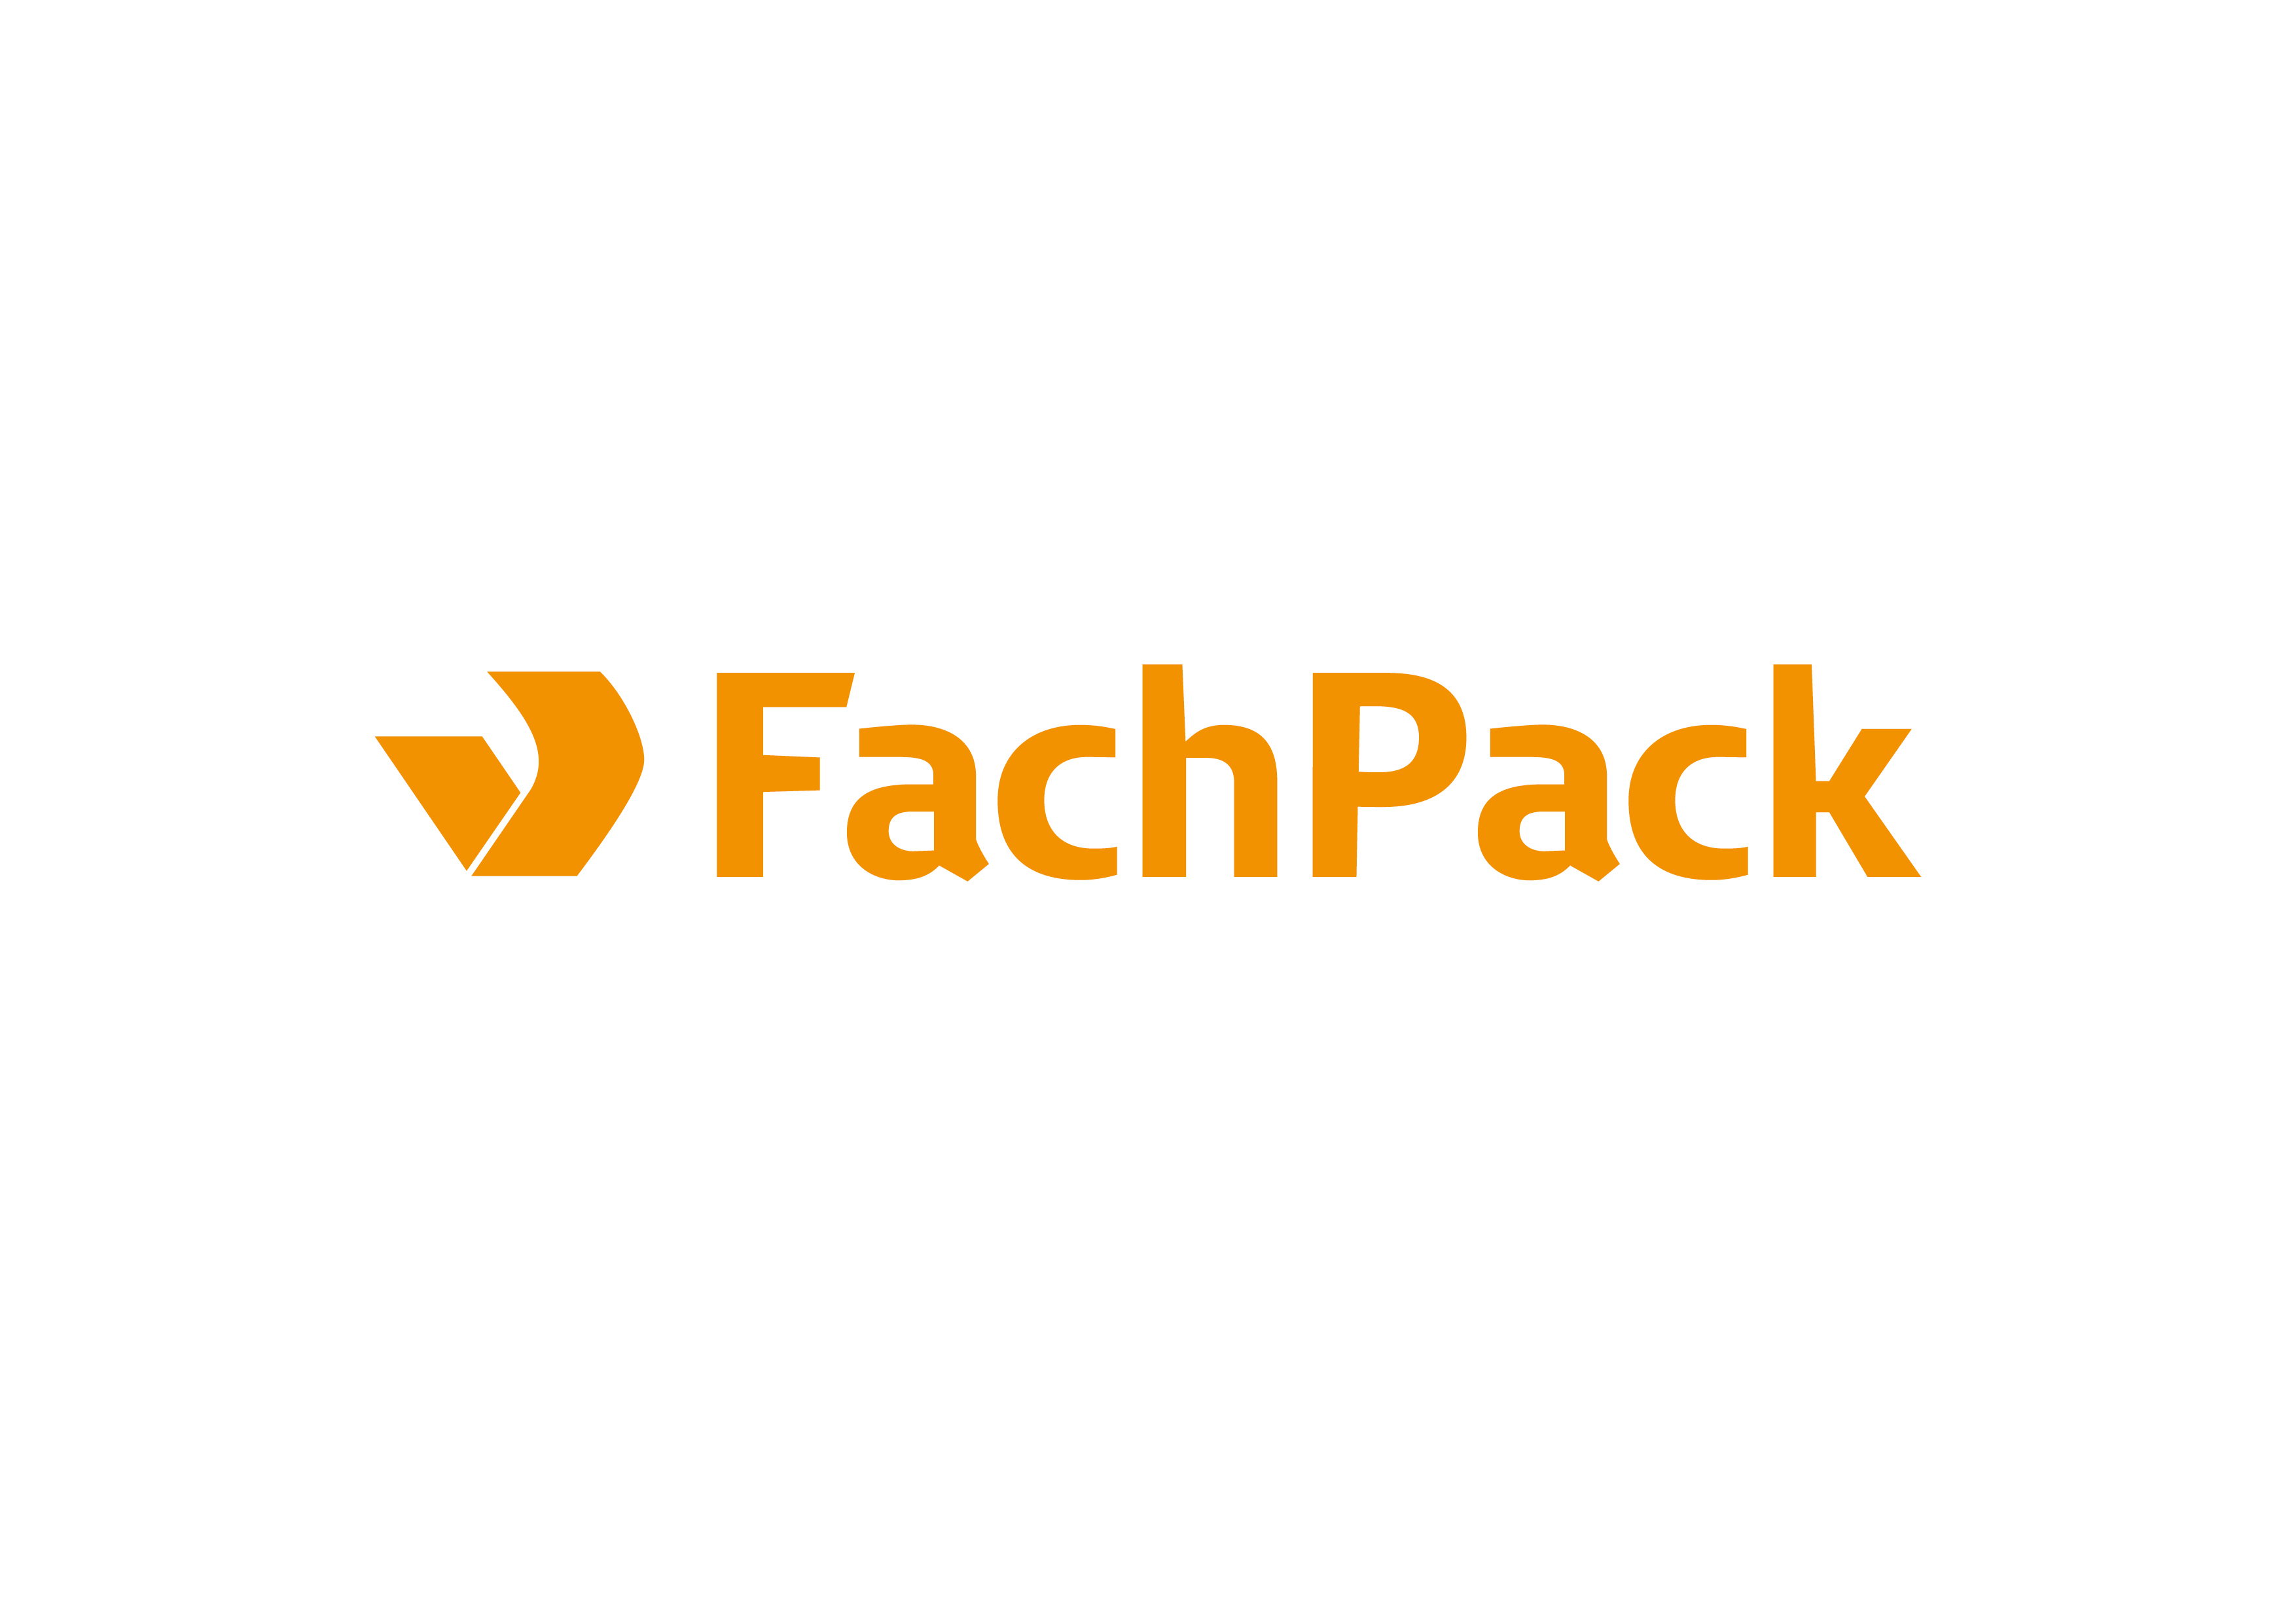 FachPack 2018 – Halle 4, Stand 4-227